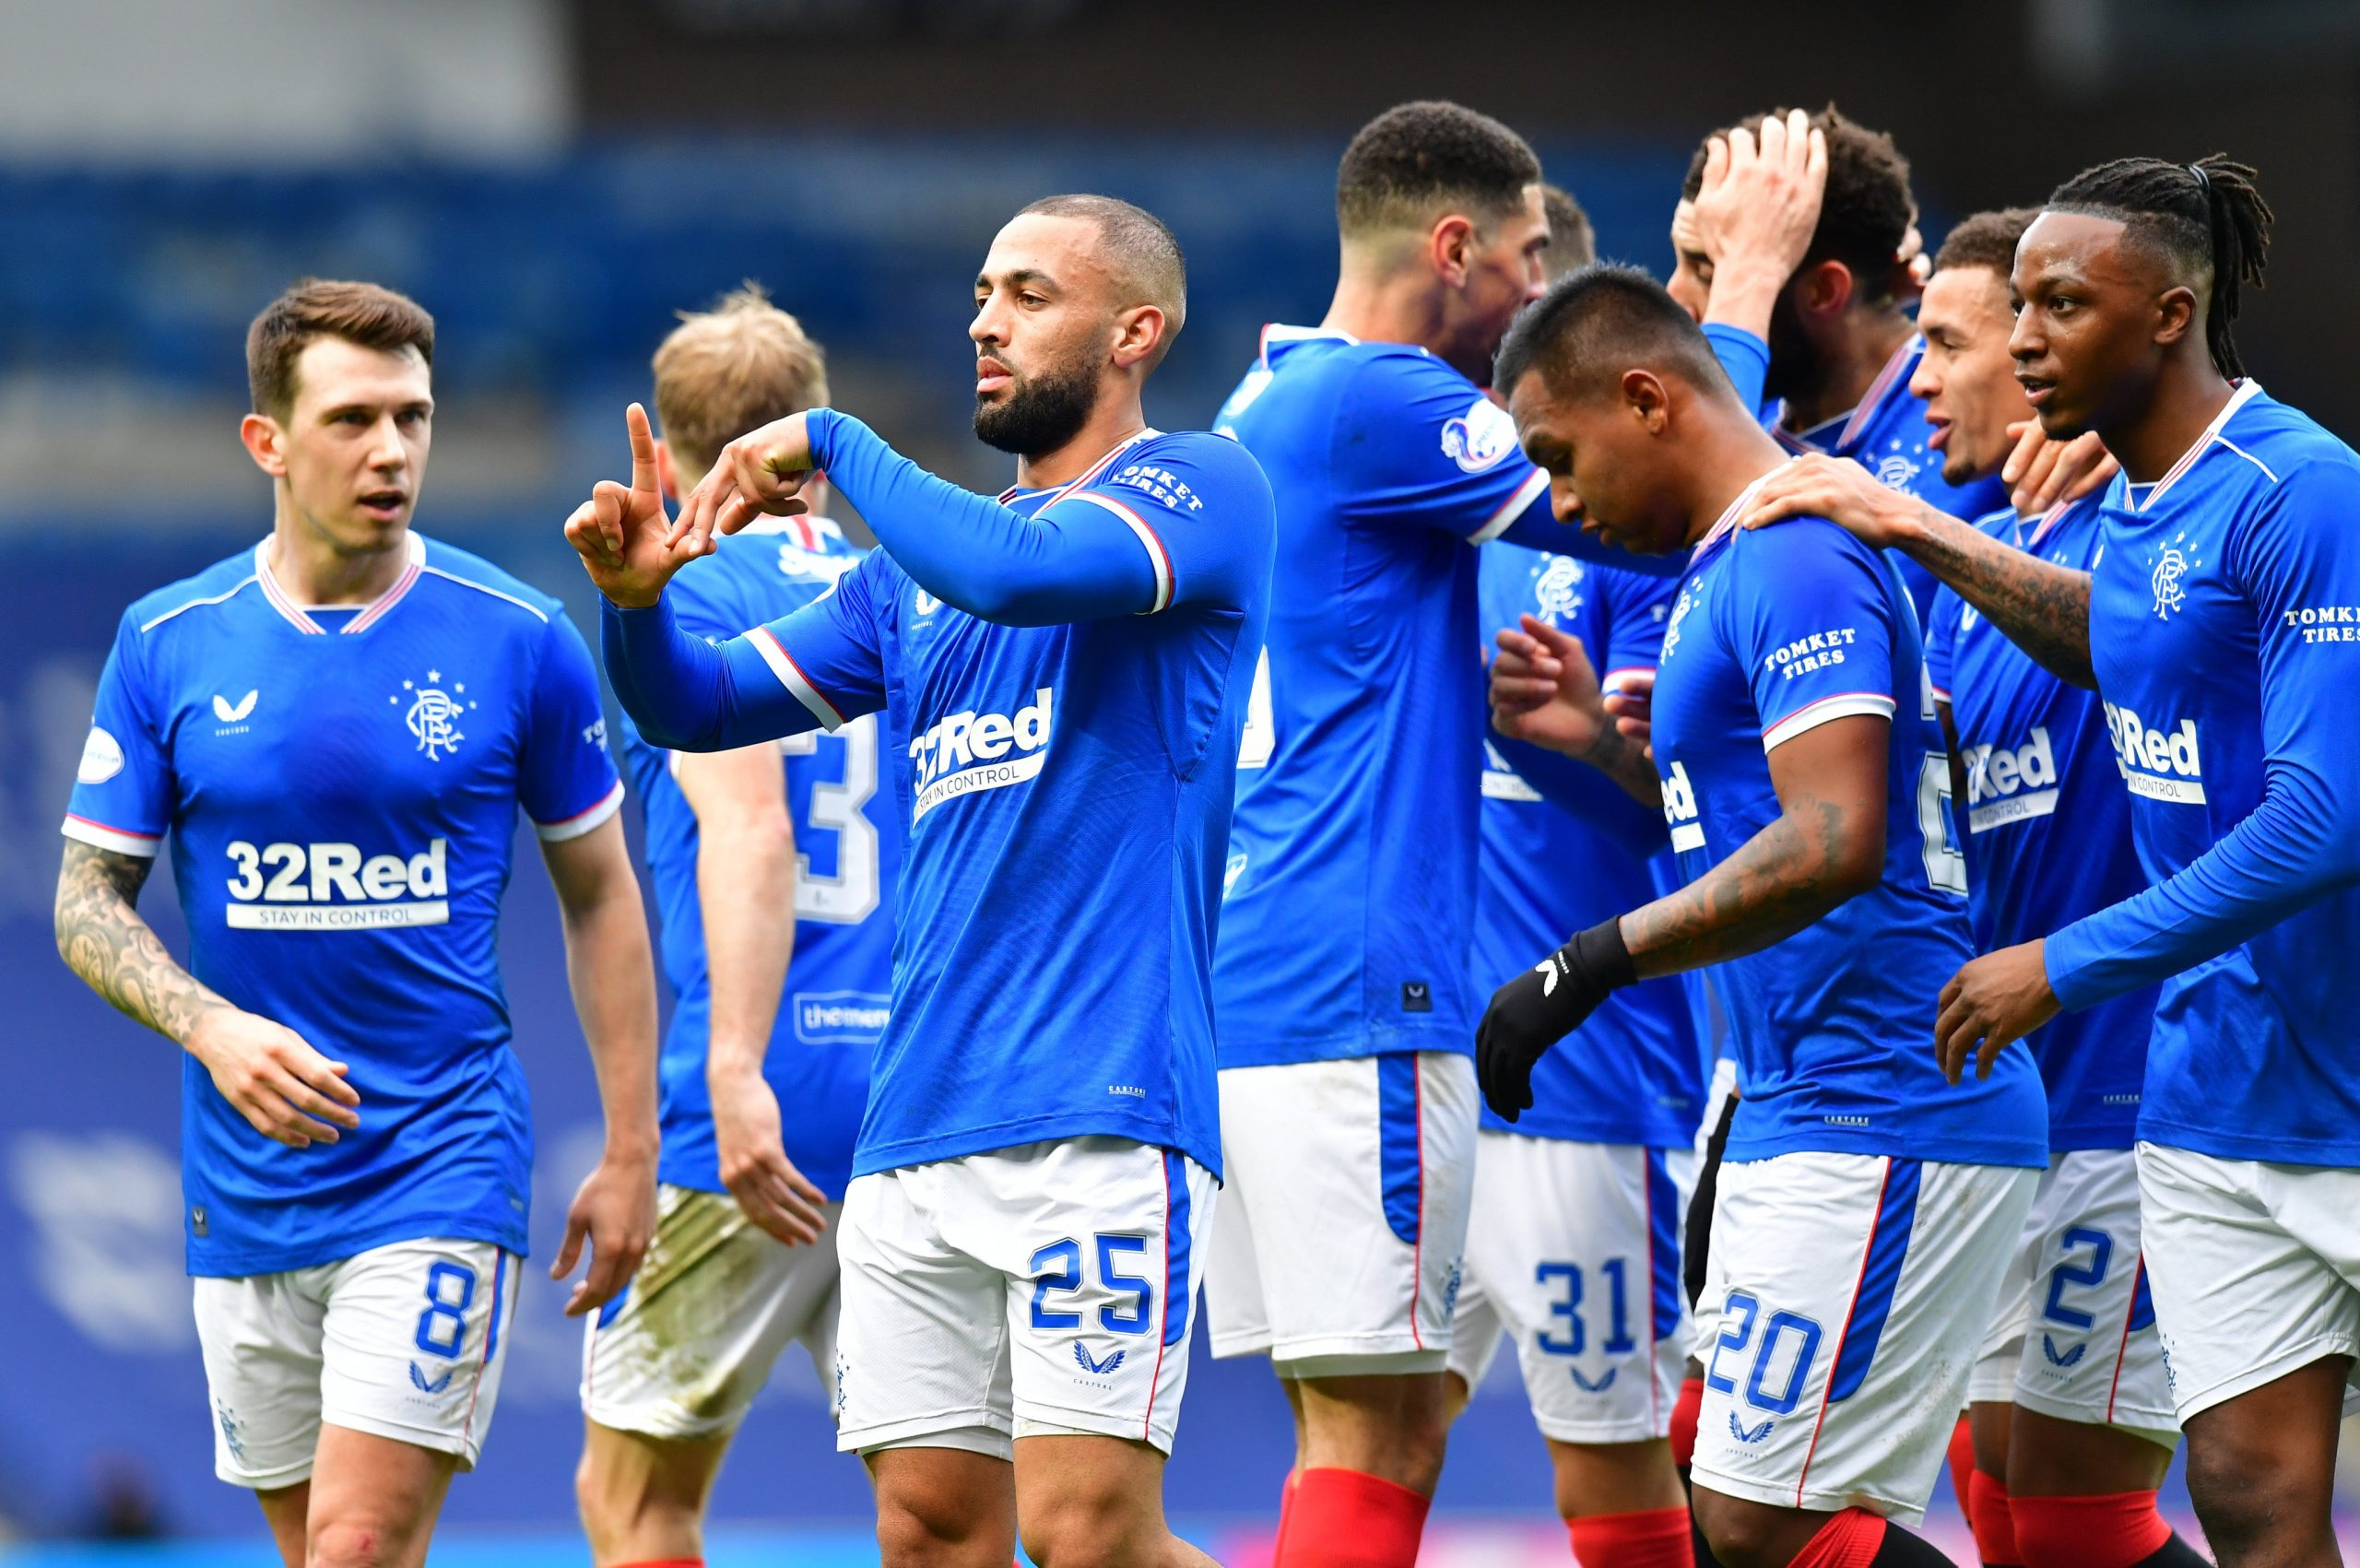 Old Firm Derby: Balogun Bags Assist, Aribo In Action As Rangers Hold Celtic Away To Maintain Unbeaten League Run